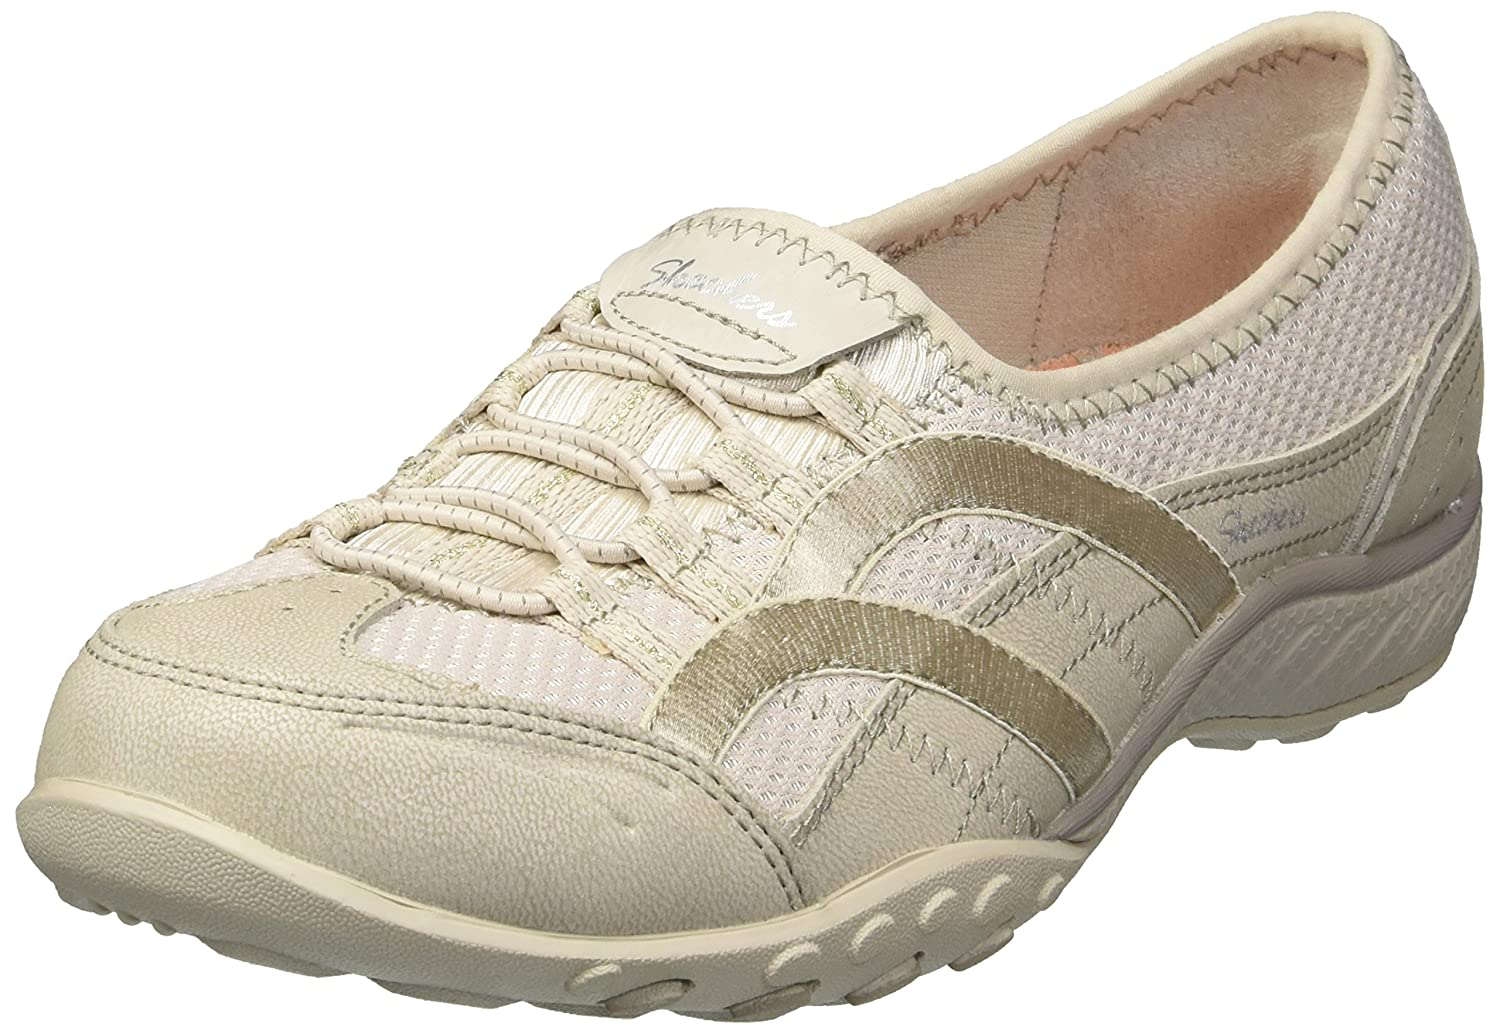 Skechers Women's Breathe Easy Well Versed Sneaker B07486CZST 9.5 B(M) US|Natural